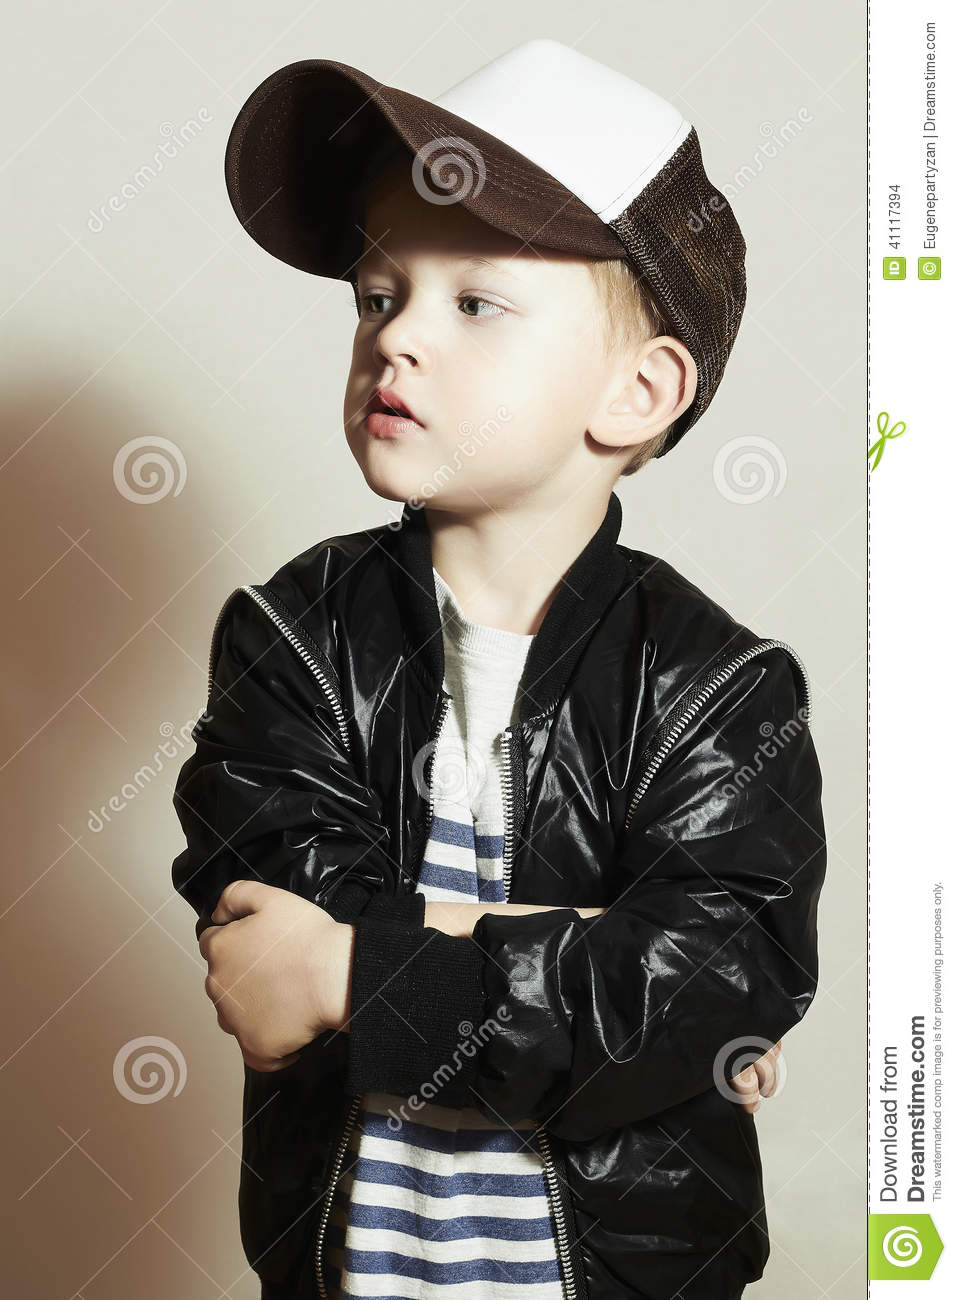 Fashionable Little Boy Hip Hop Style Fashion Children